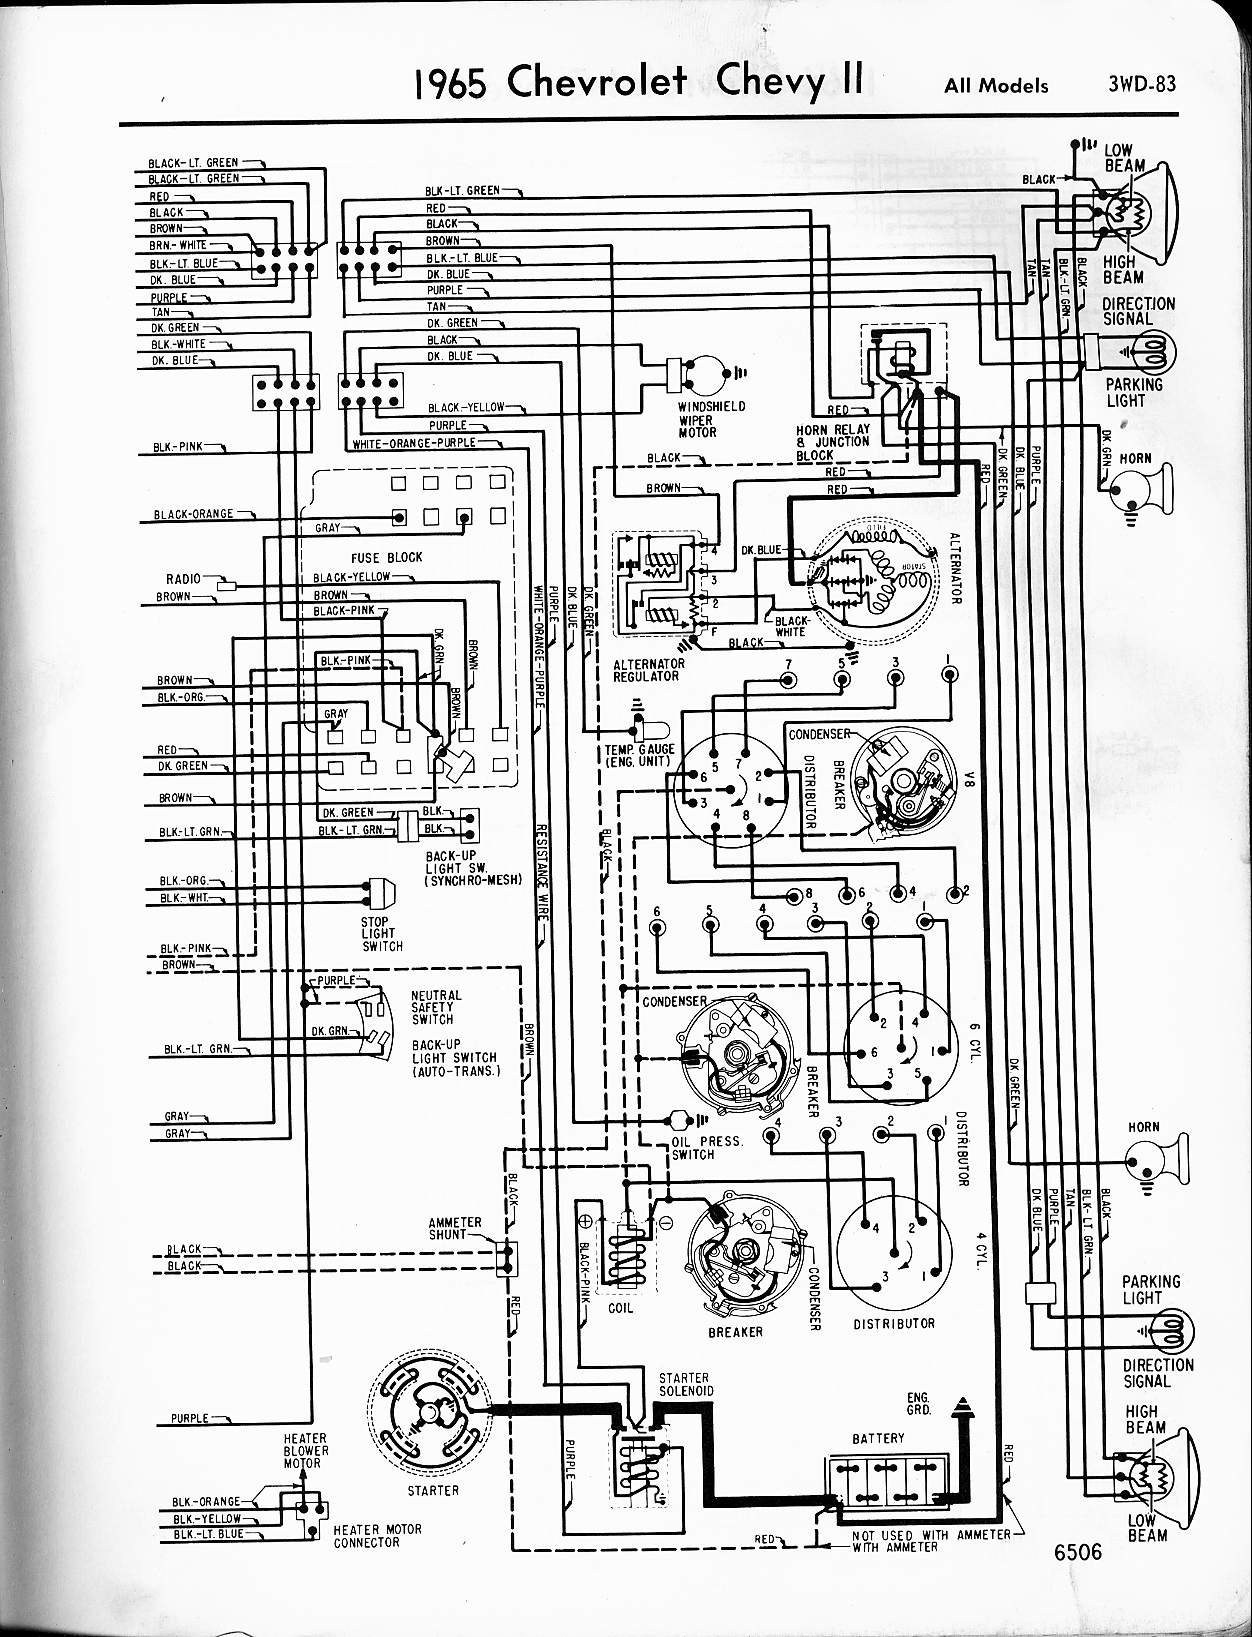 DIAGRAM] Chevy C20 Ignition Wiring Diagram FULL Version HD Quality Wiring  Diagram - KITPROGSCHEMATIC8127.BEAUTYWELL.ITkitprogschematic8127.beautywell.it